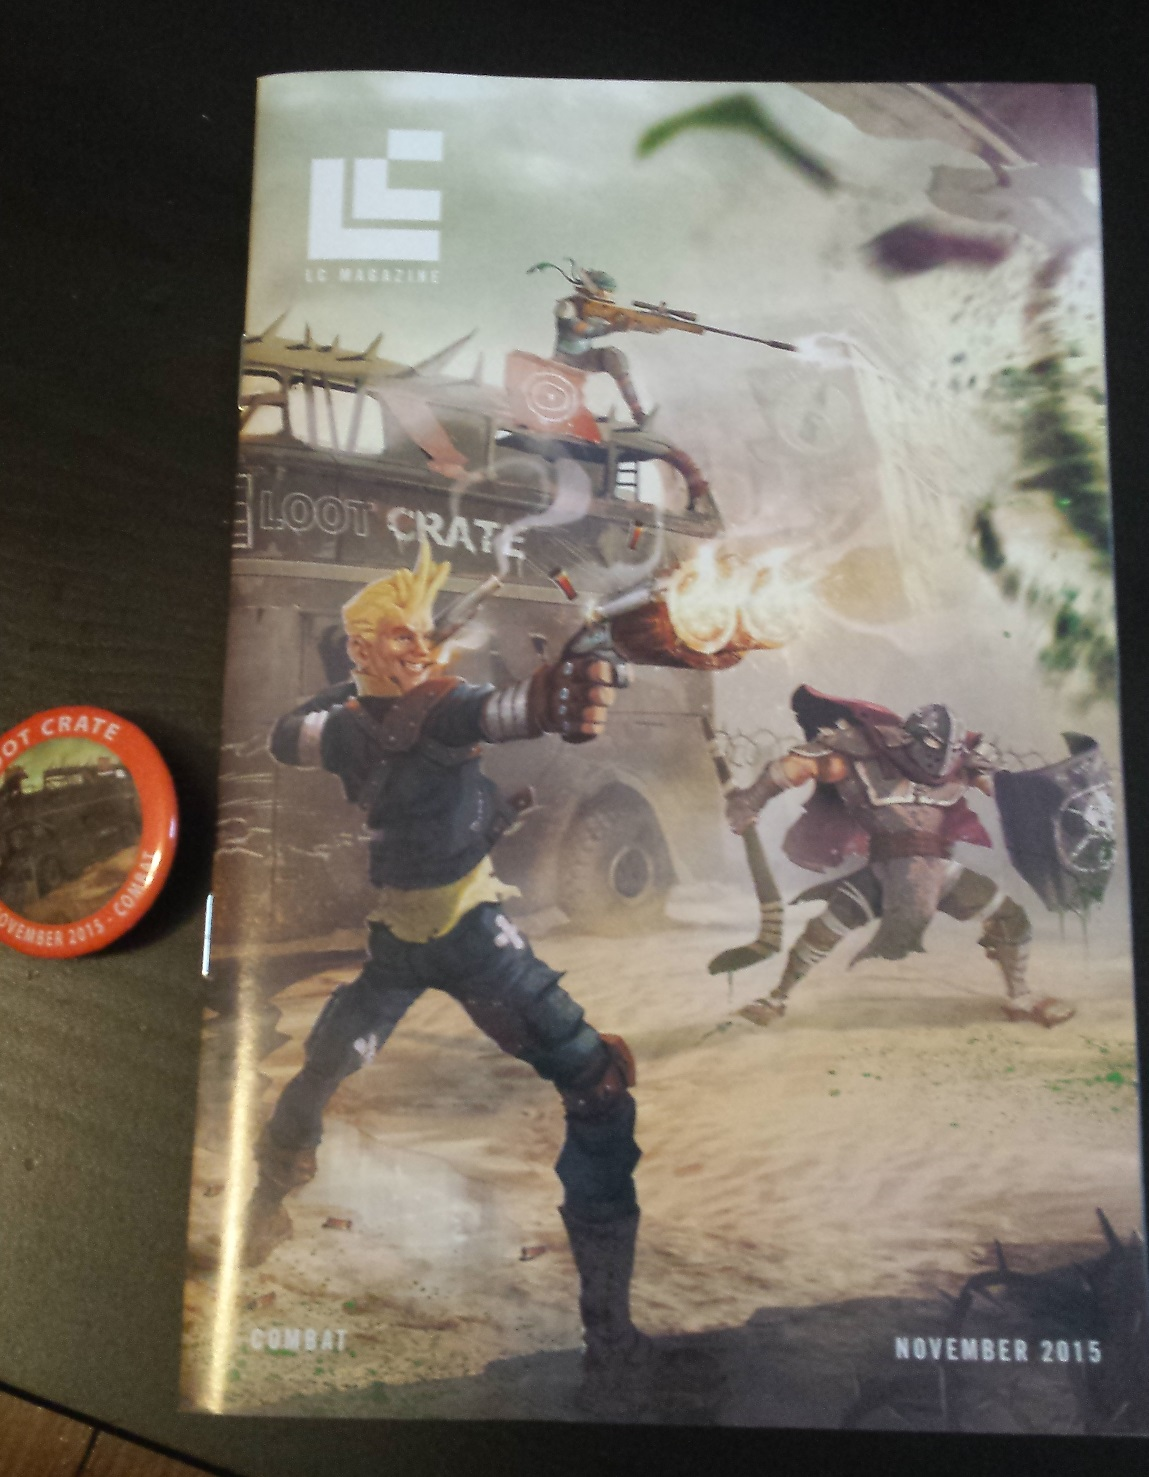 Magazine and pin, loot crate, loot crate review, november loot crate, unboxing